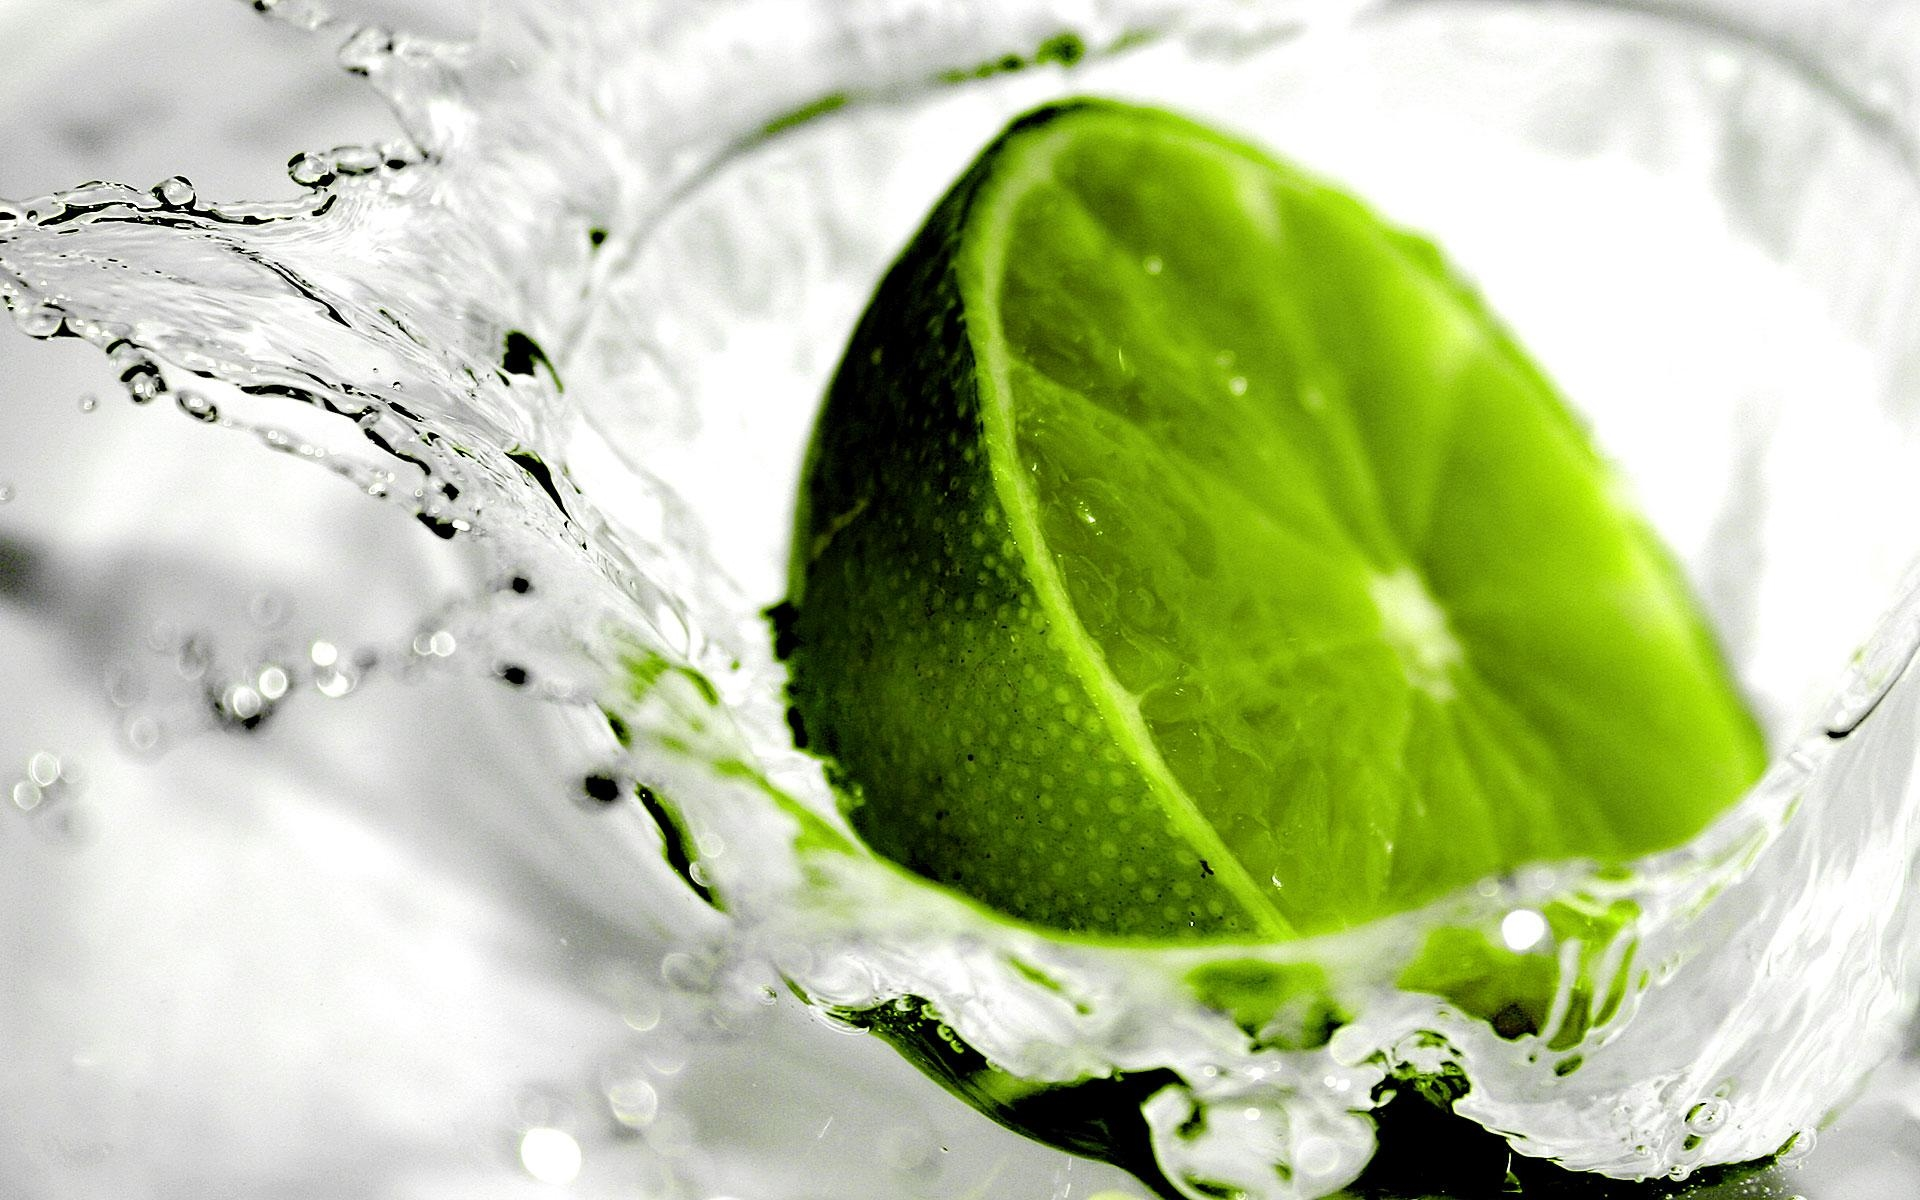 green lemon water splash hd wallpaper